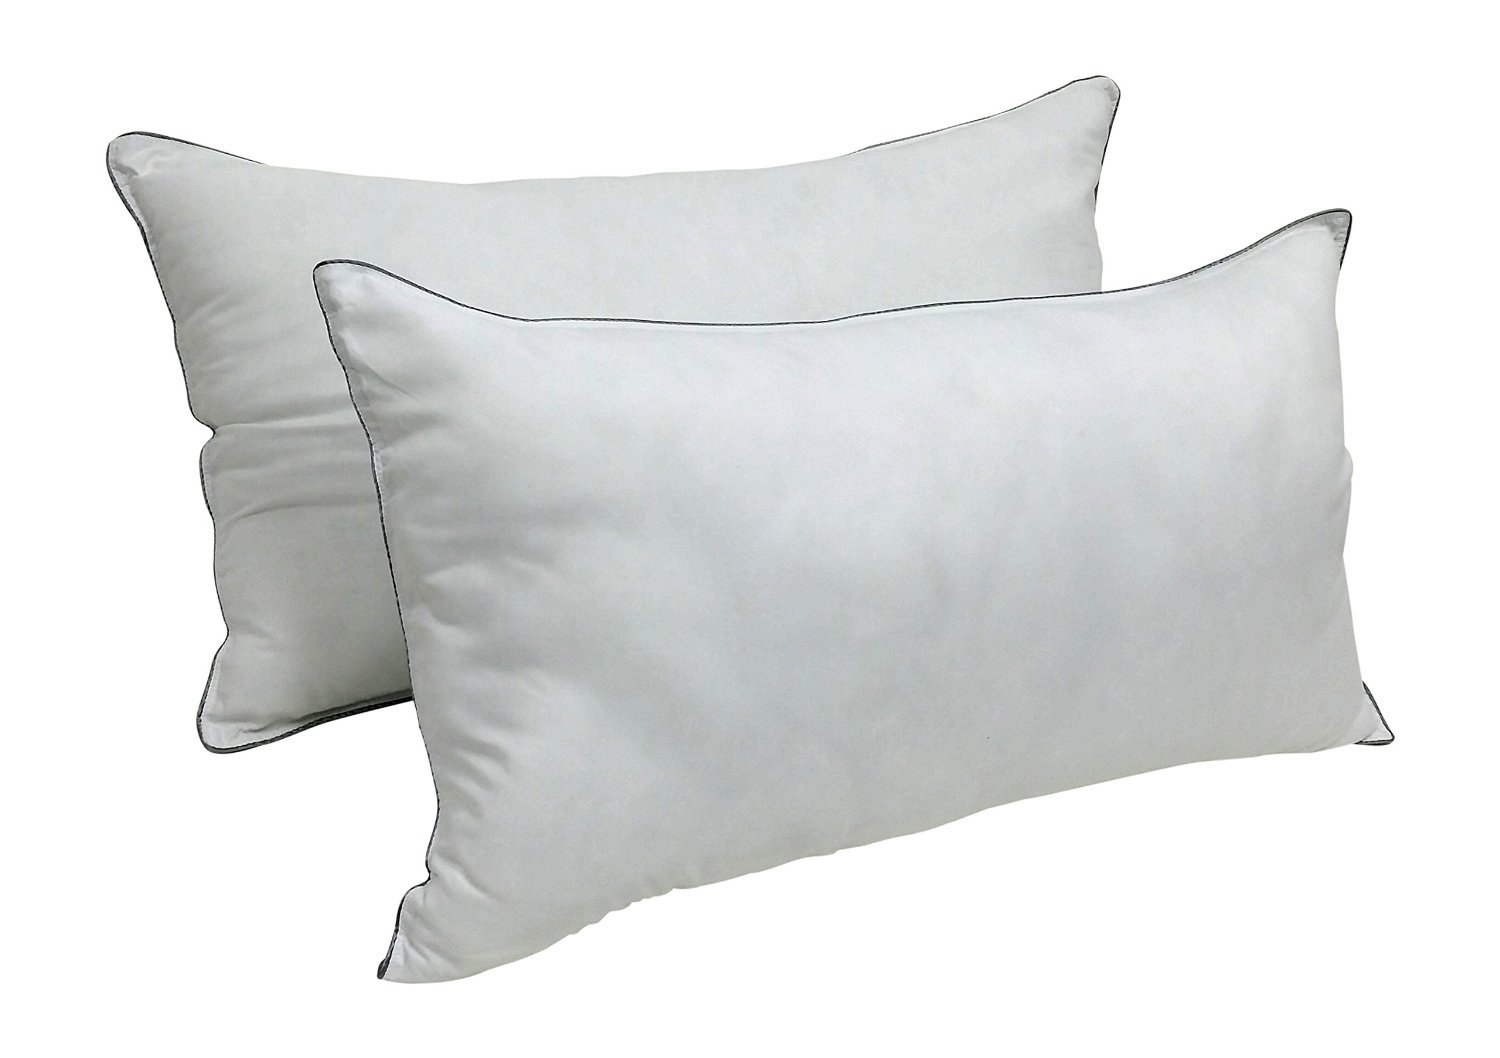 Amazon.com: Set of 2 - Dream Deluxe - Ultimate Bed Pillows - Medium Density  - Exclusively by Blowout Bedding RN# 142035 - Standard: Home & Kitchen